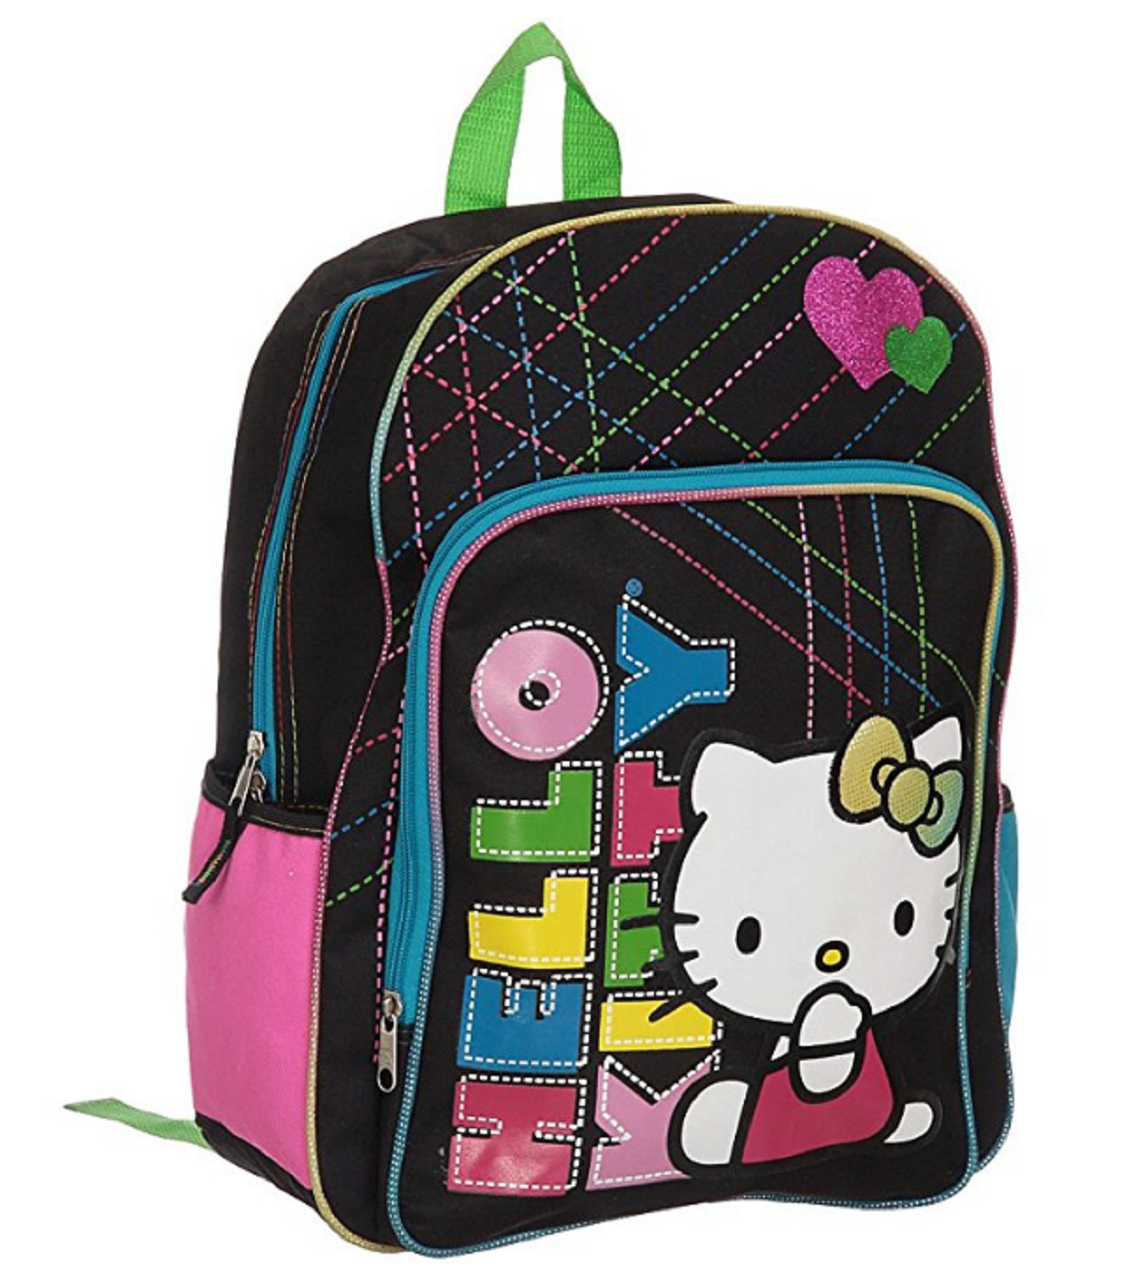 7e80b47b54e6 Backpack - Hello Kitty - Large 16 Inches - Letters Multicolored